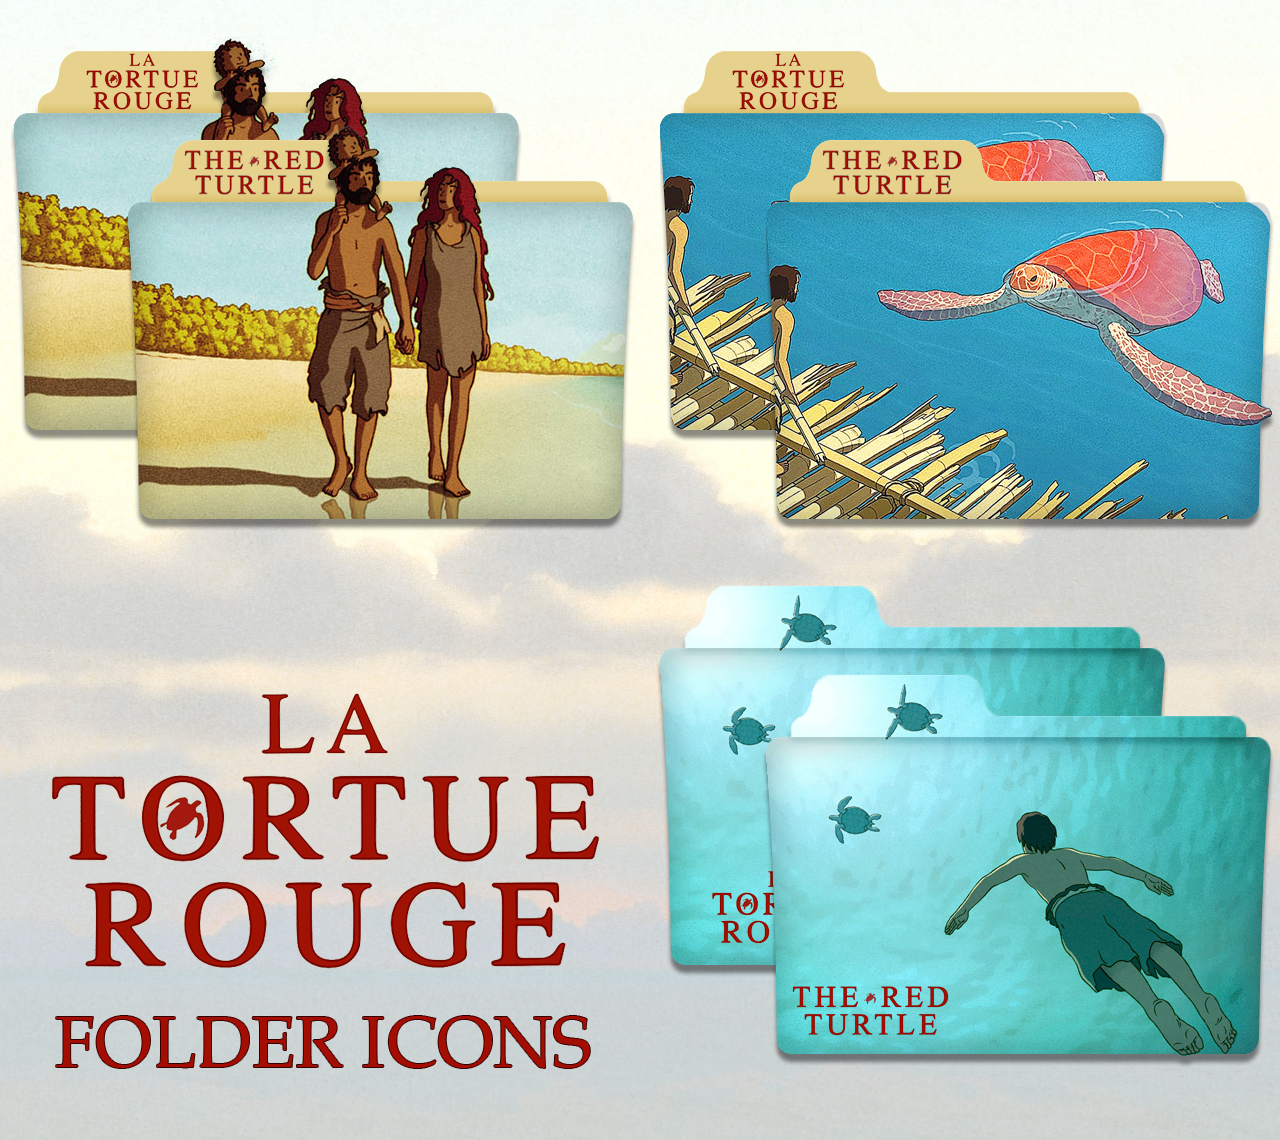 The Red Turtle La Tortue Rouge Folder Icons By Zifis On Deviantart